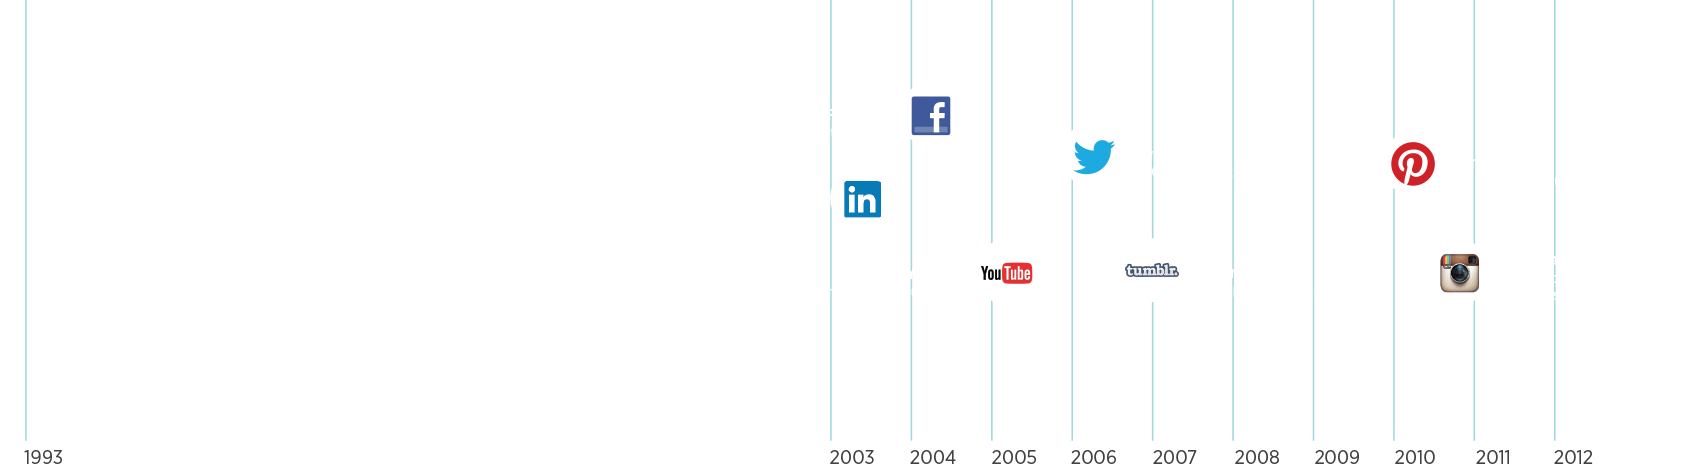 A timeline showing the emergence of social media